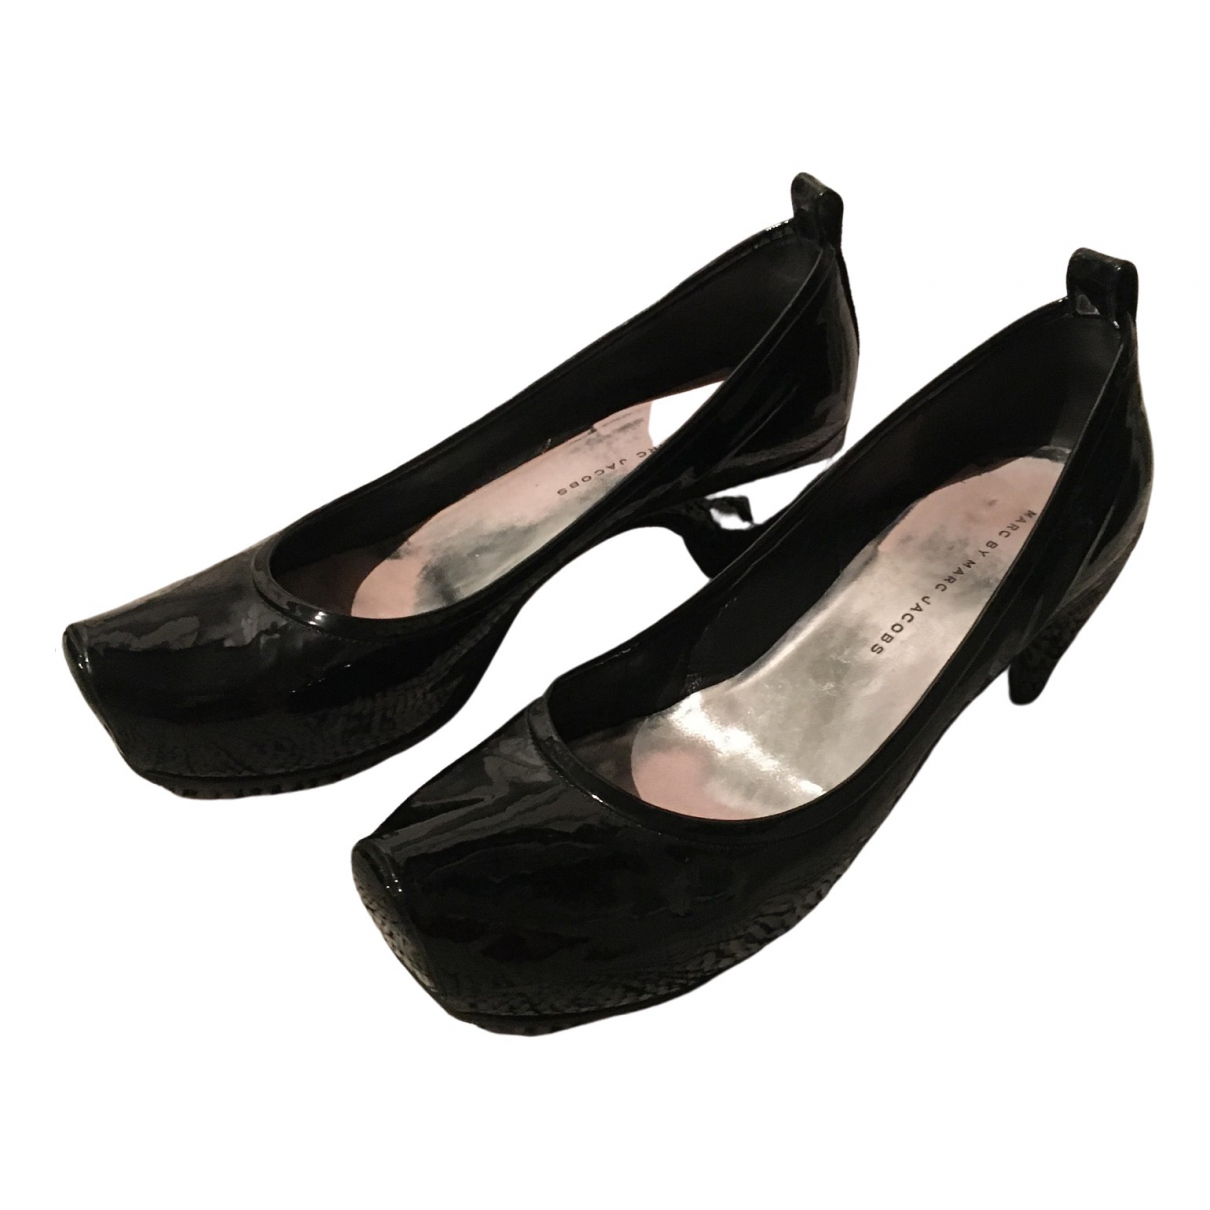 Marc By Marc Jacobs \N Black Patent leather Heels for Women 39 EU